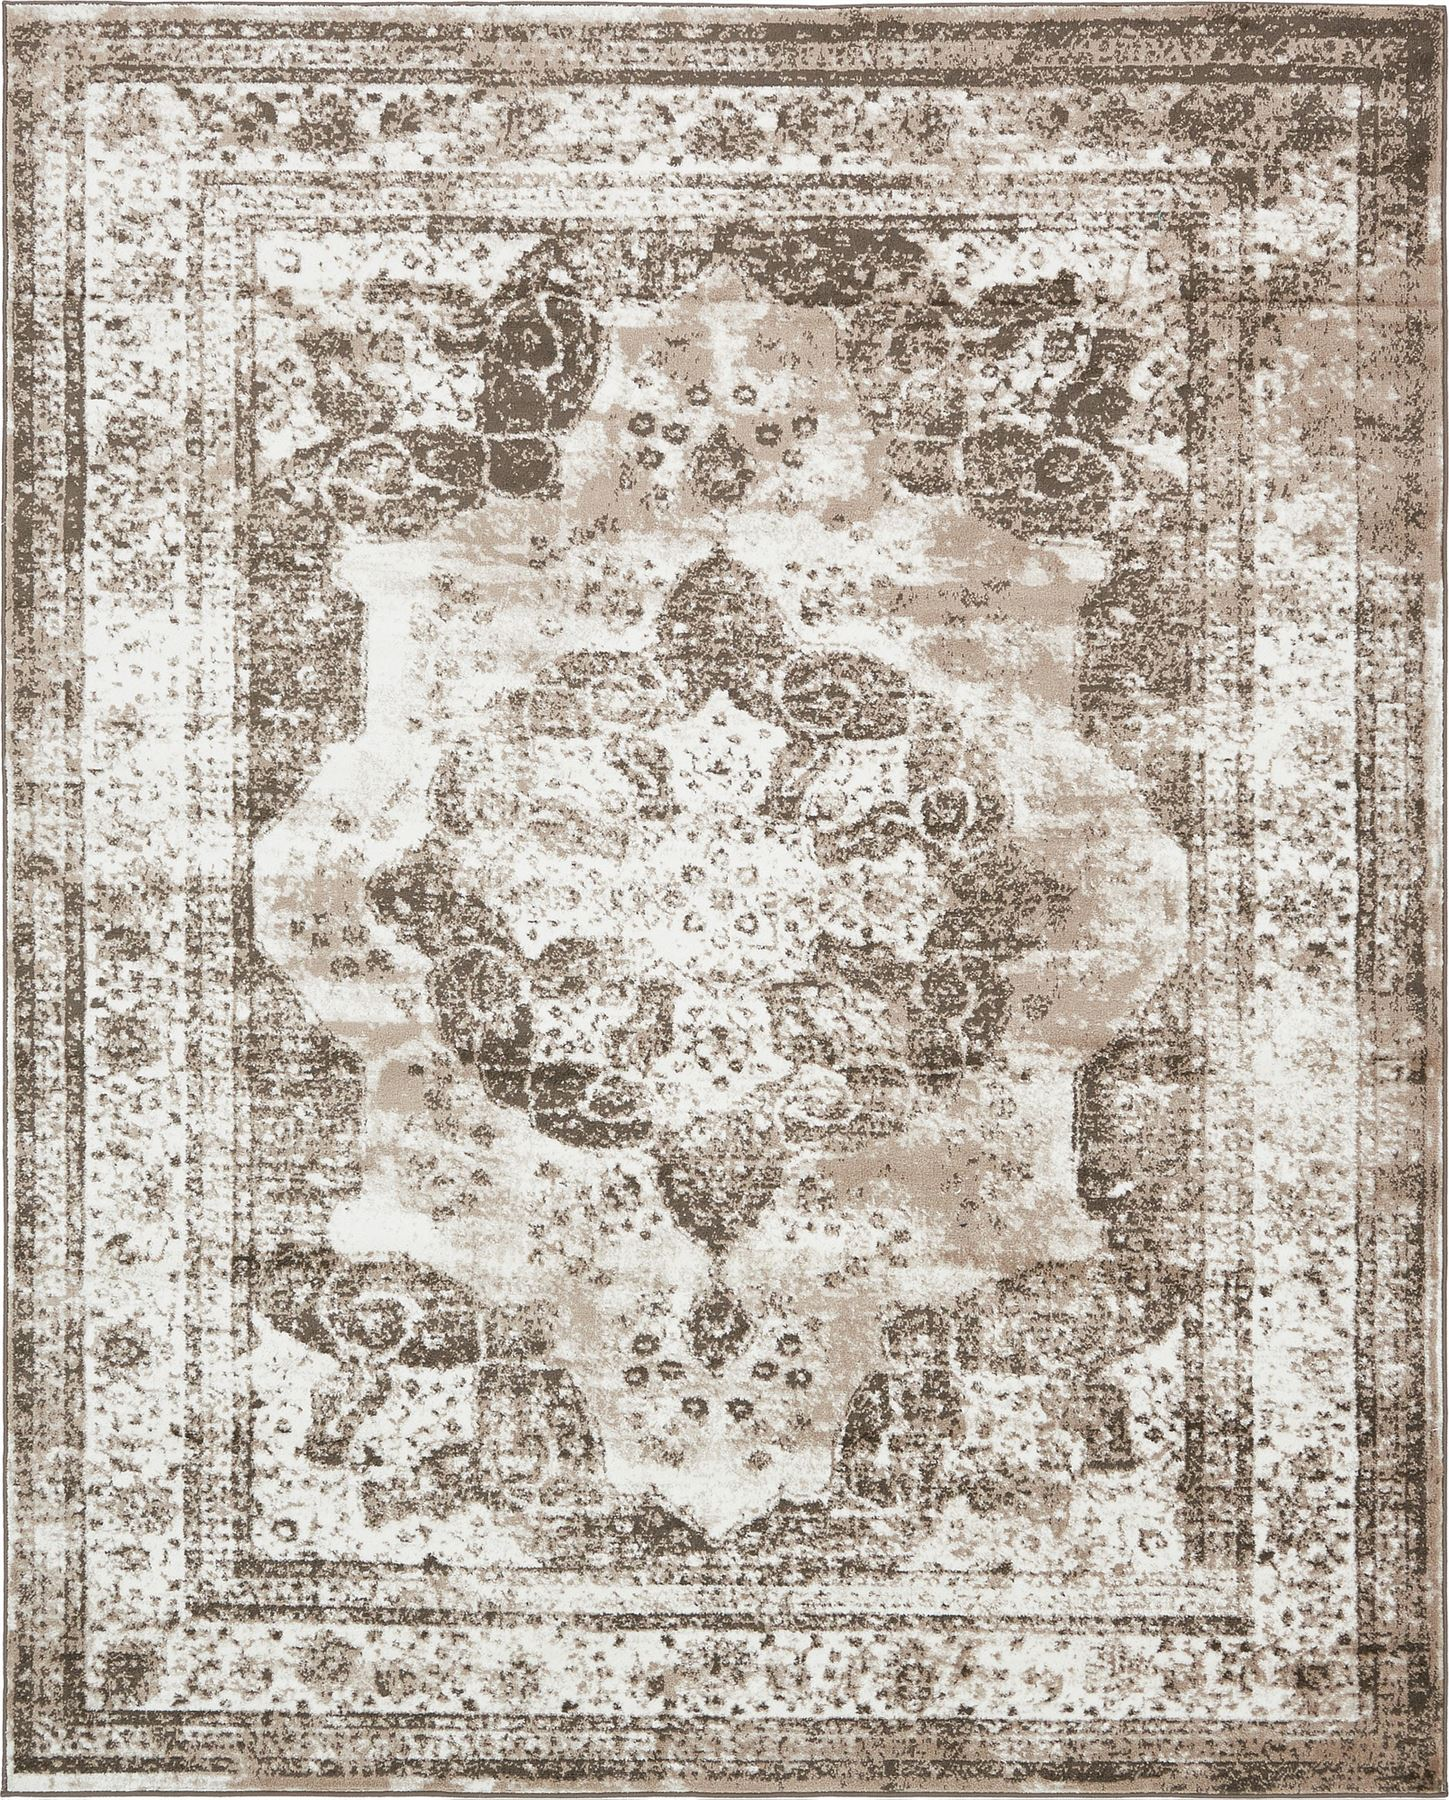 Oriental Persian Design Modern Carpet Contemporary Area